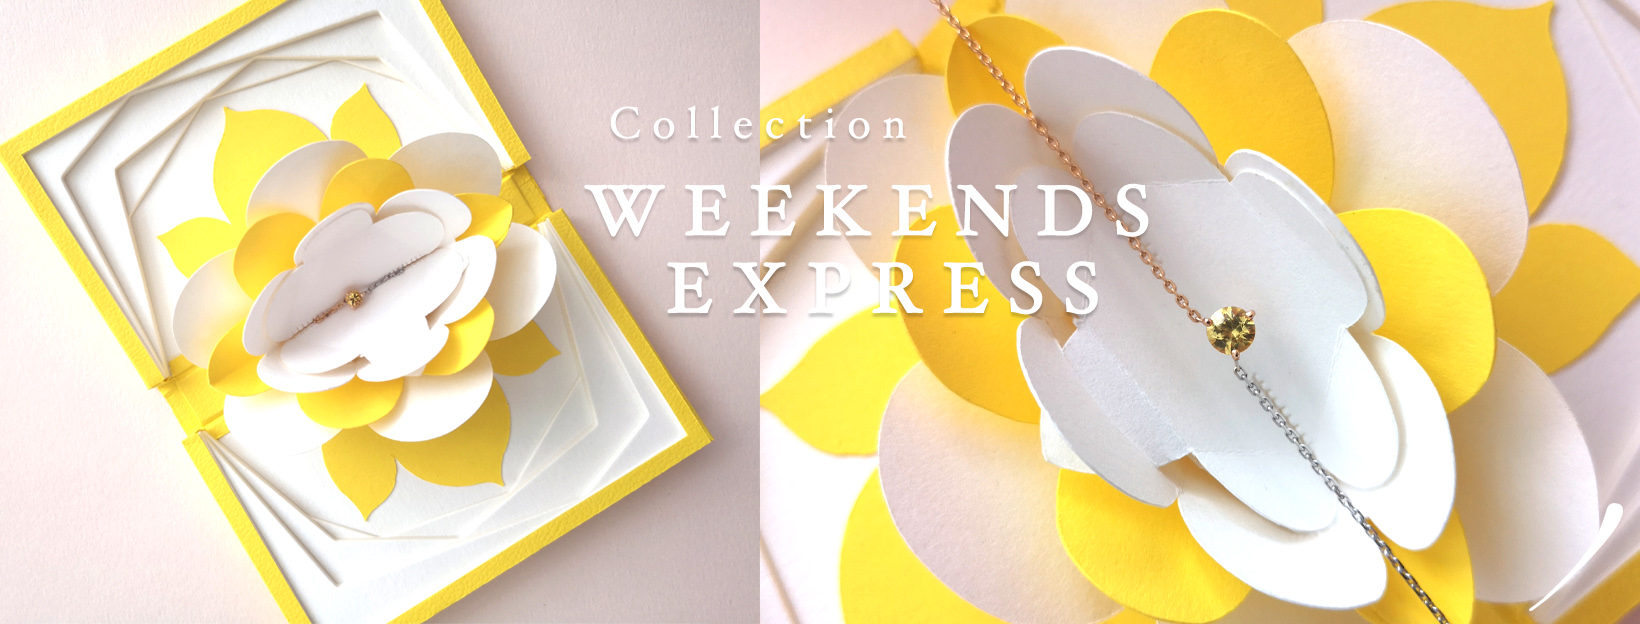 Collection Weekends Express, Courpré Joaillerie - The Explorative Fine Jewelry / Joaillerie Française et Fairmined